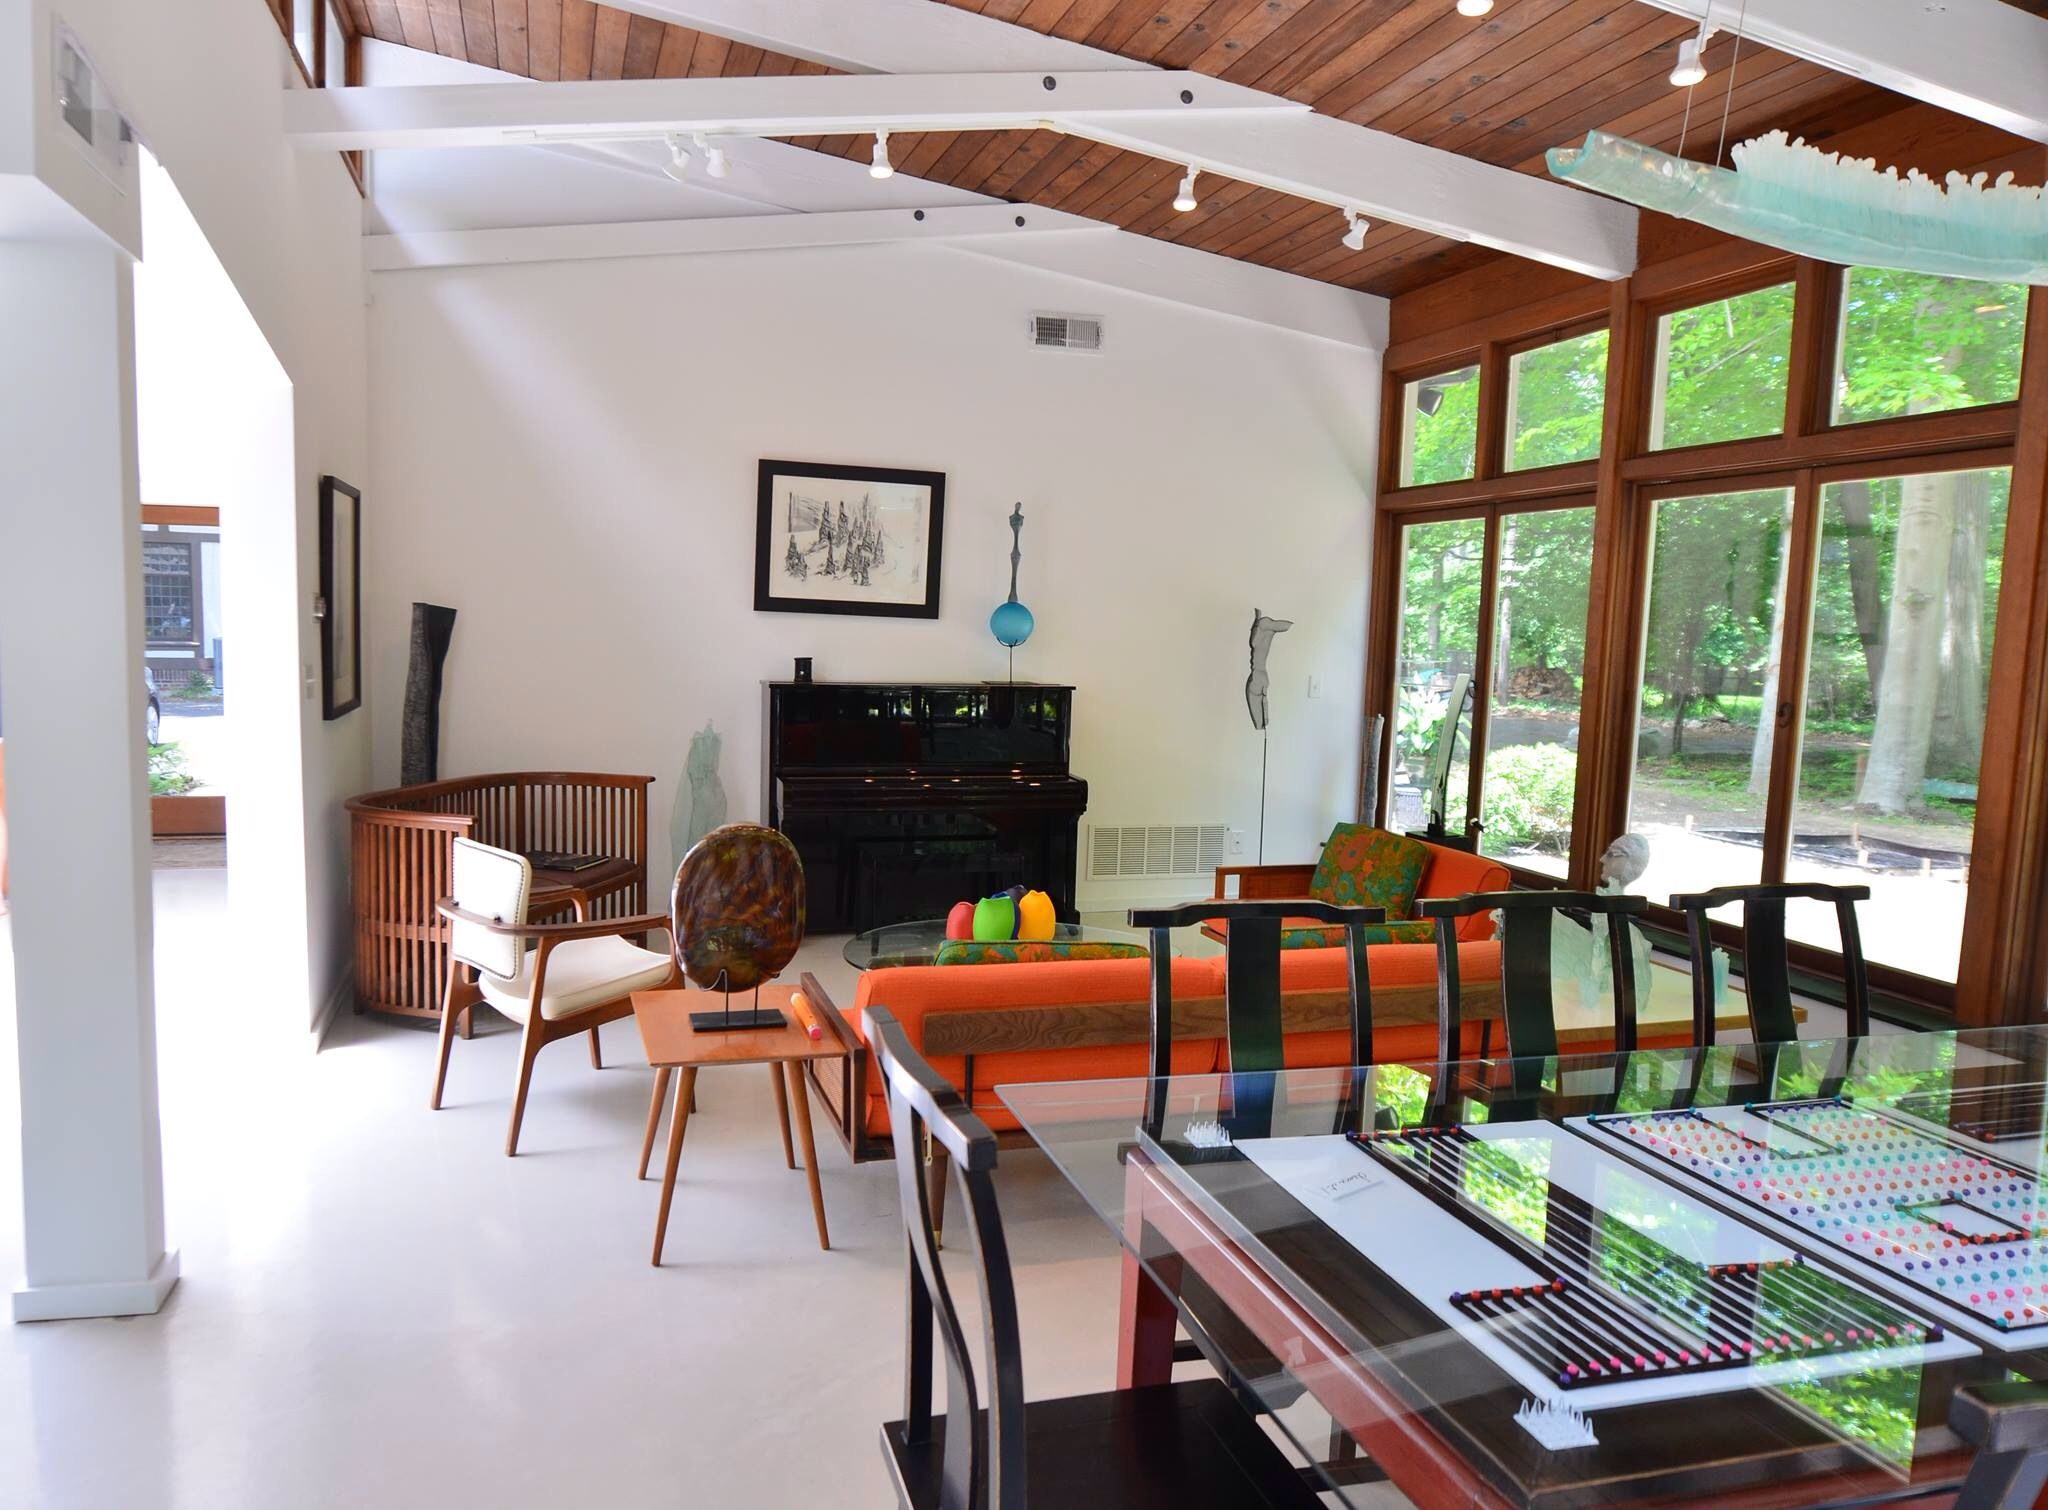 Our Mid Century Modern Uniqueness Bnb In Cleveland Hts OH Http://airbnb